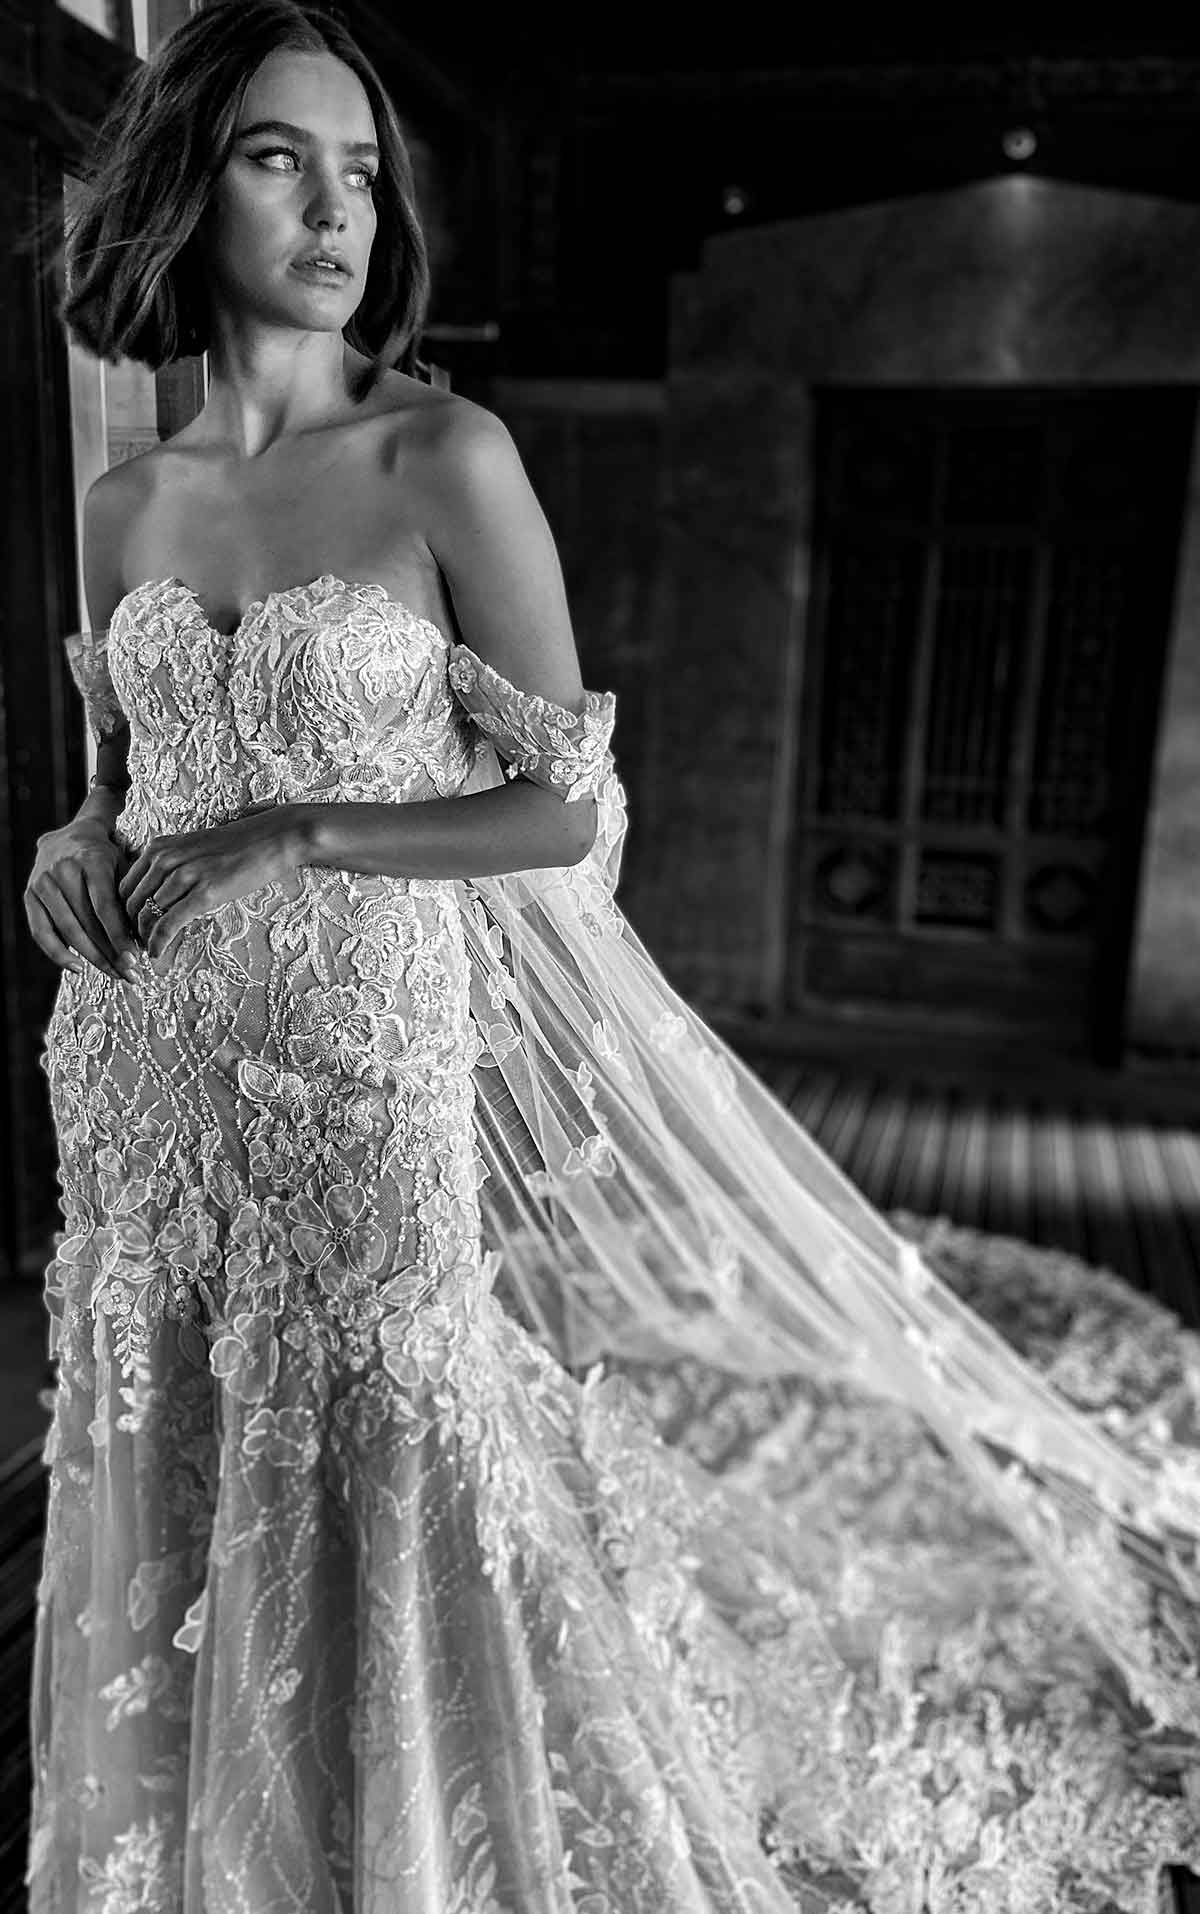 LE1124 Modern Floral Fit-and-Flare Wedding Dress with Detachable Cape by Martina Liana